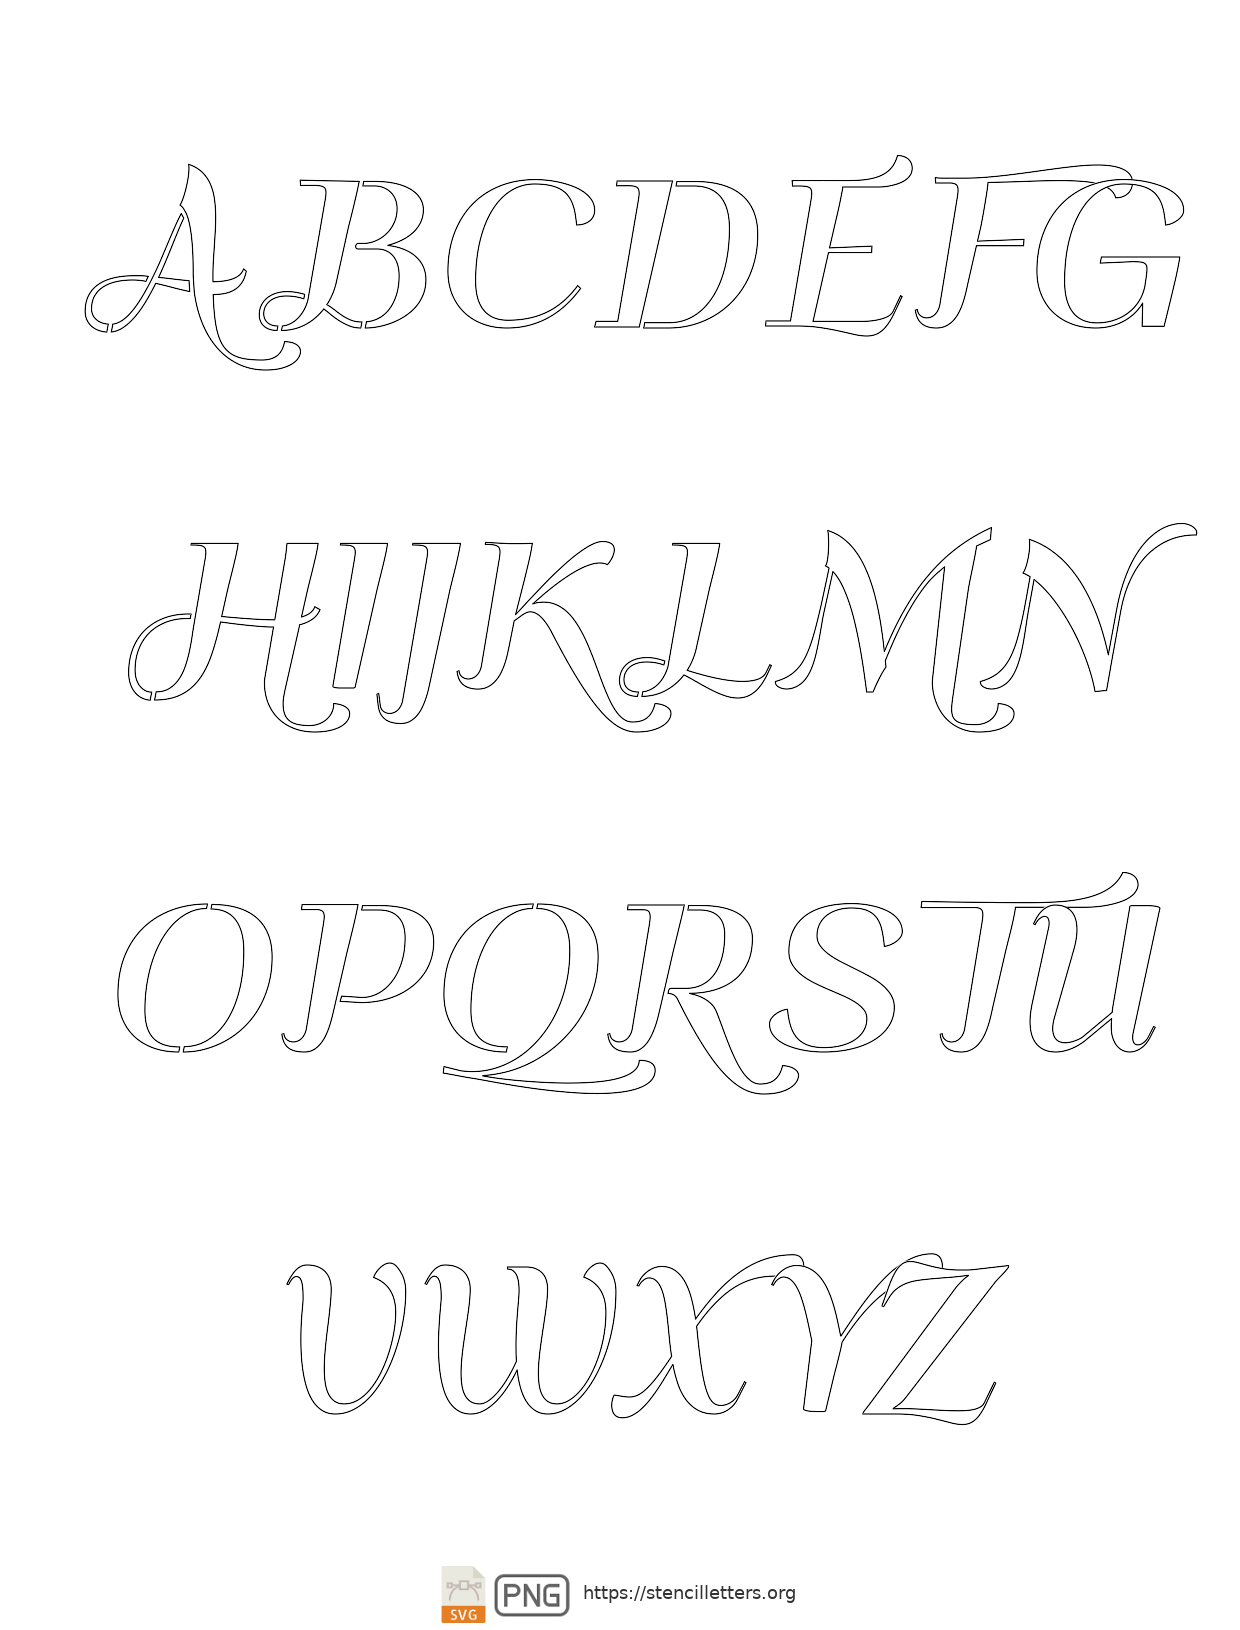 Italic Art Decor uppercase letter stencils